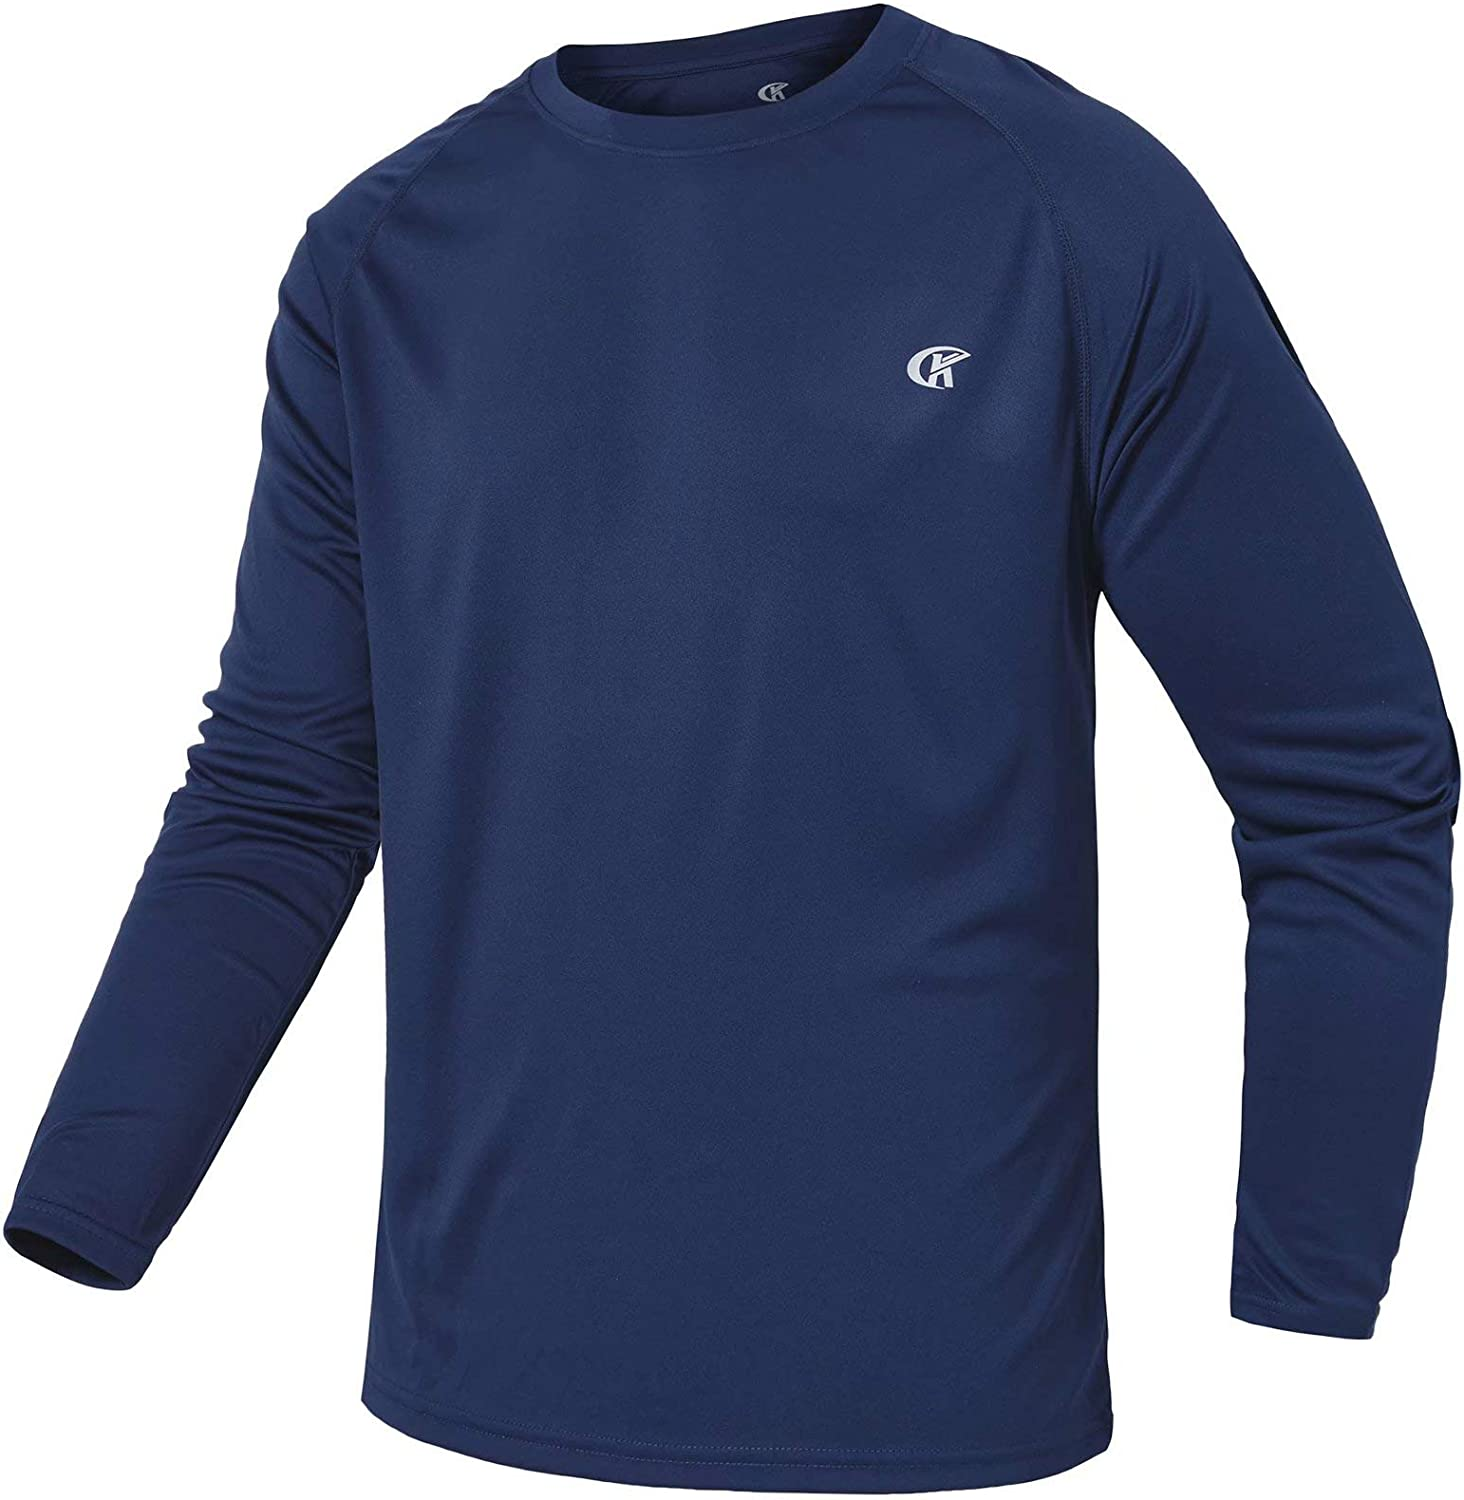 Mens Outdoor Max 45% OFF Athletic Shirts UPF 50+ Sun Protection UV Long Slee Purchase